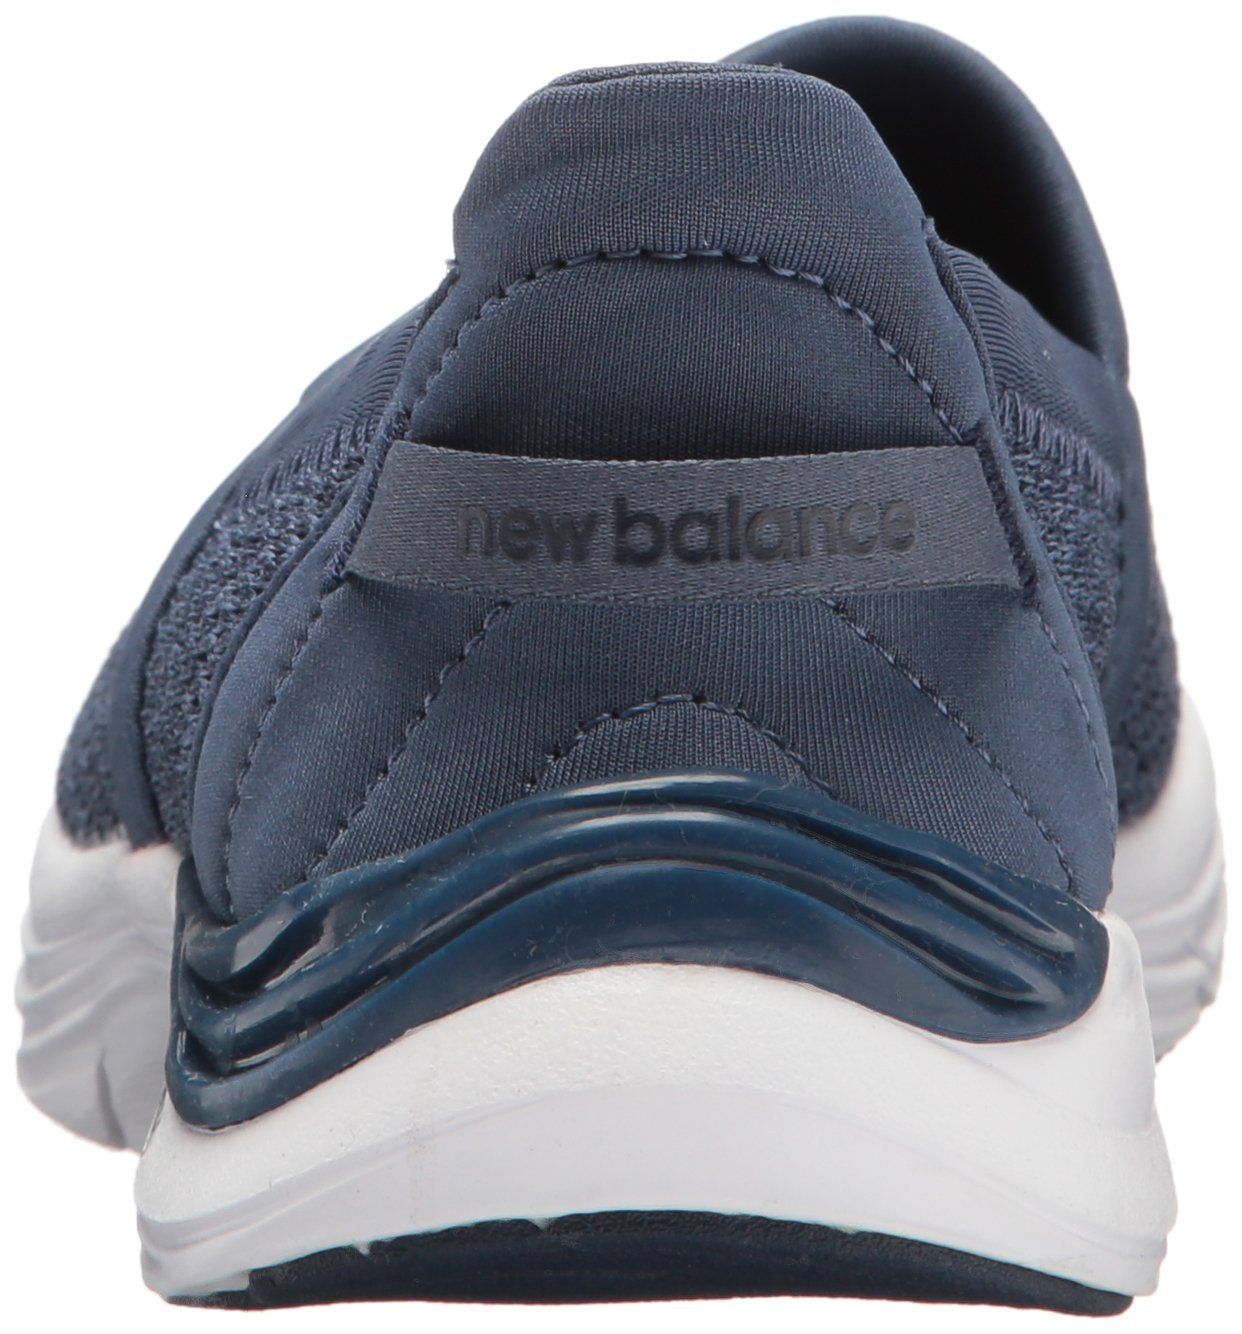 New Balance Women's 265v1 CUSH + Walking Shoe B06XK21J7L 5.5 D US|Blue/White